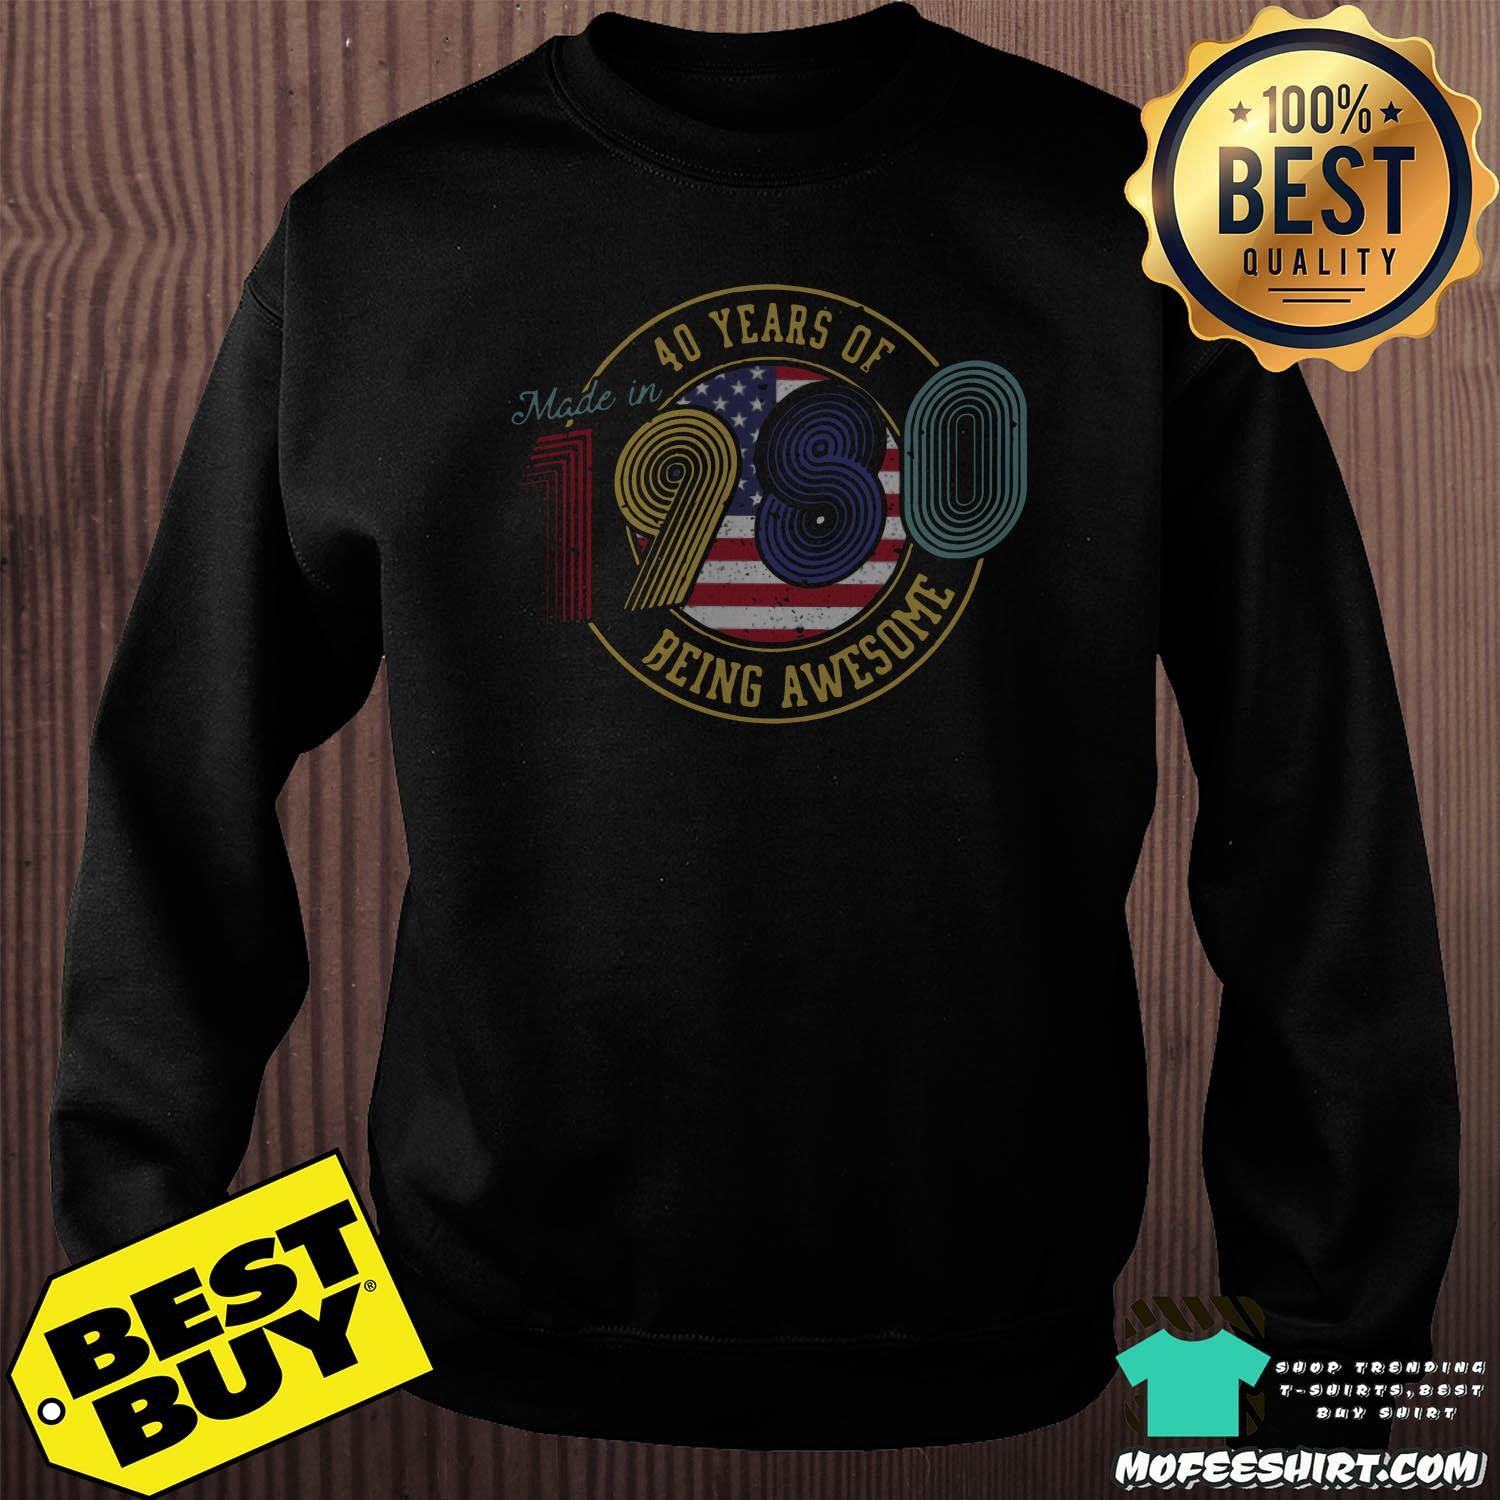 made in 40 years of 1980 being awesome american vintage sweatshirt - Made in 40 Years Of 1980 Being Awesome American Vintage Shirt